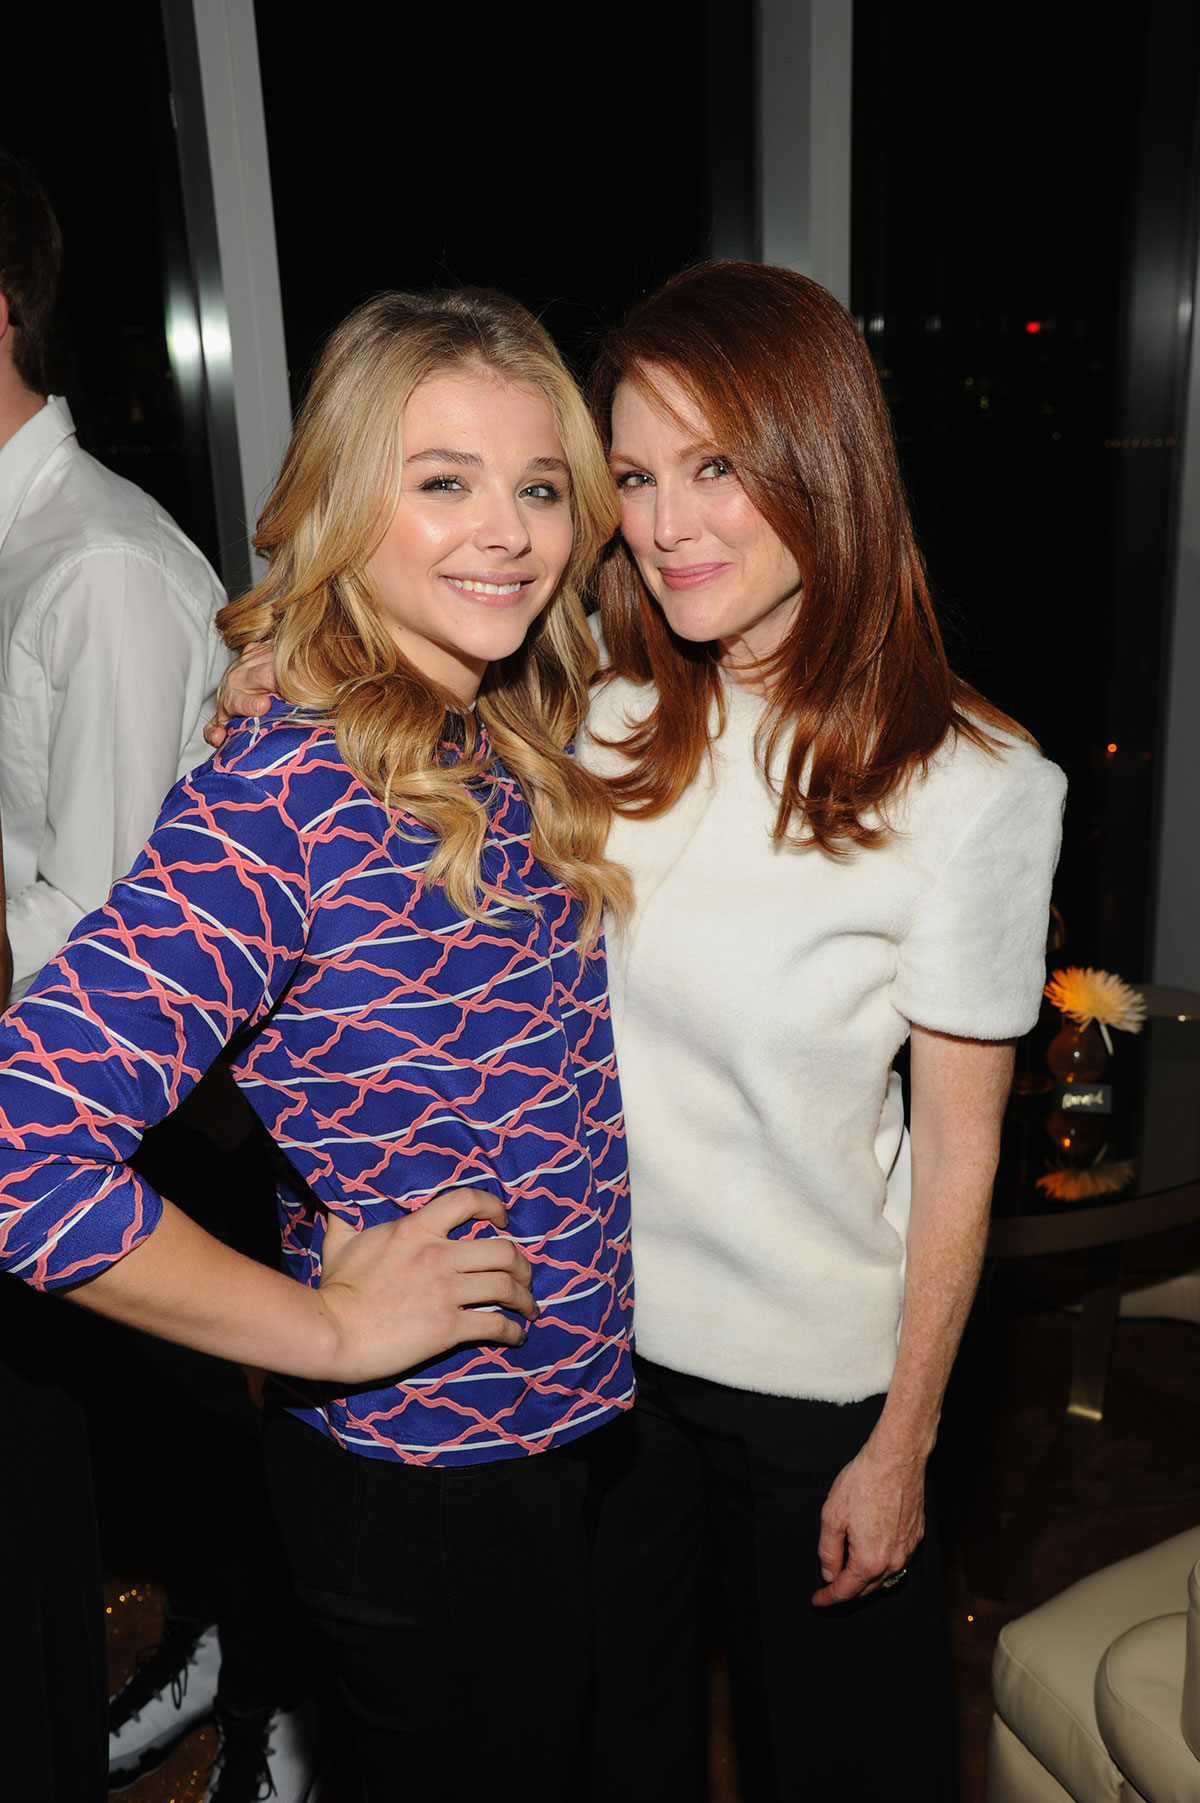 Chloe Moretz attends NBA 2K15 Launch Celebration in New York